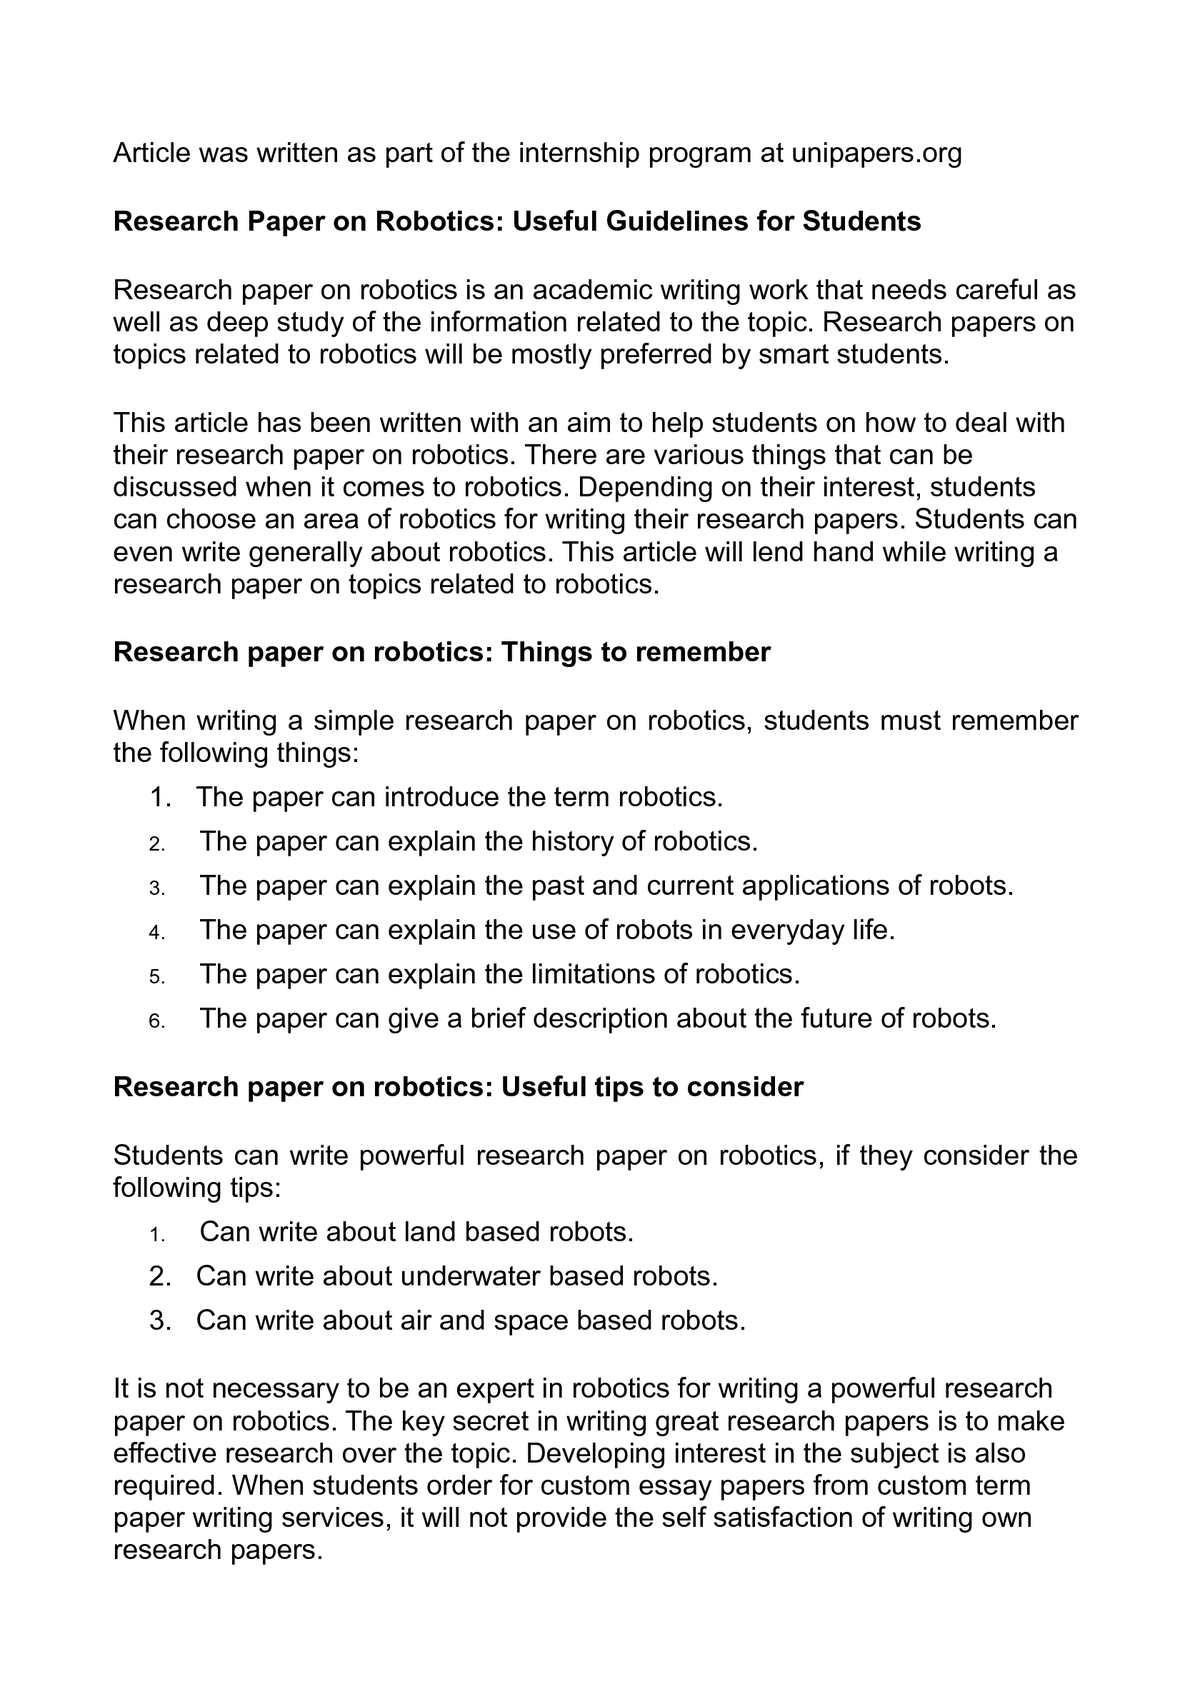 Calameo Research Paper On Robotics Useful Guidelines For Students